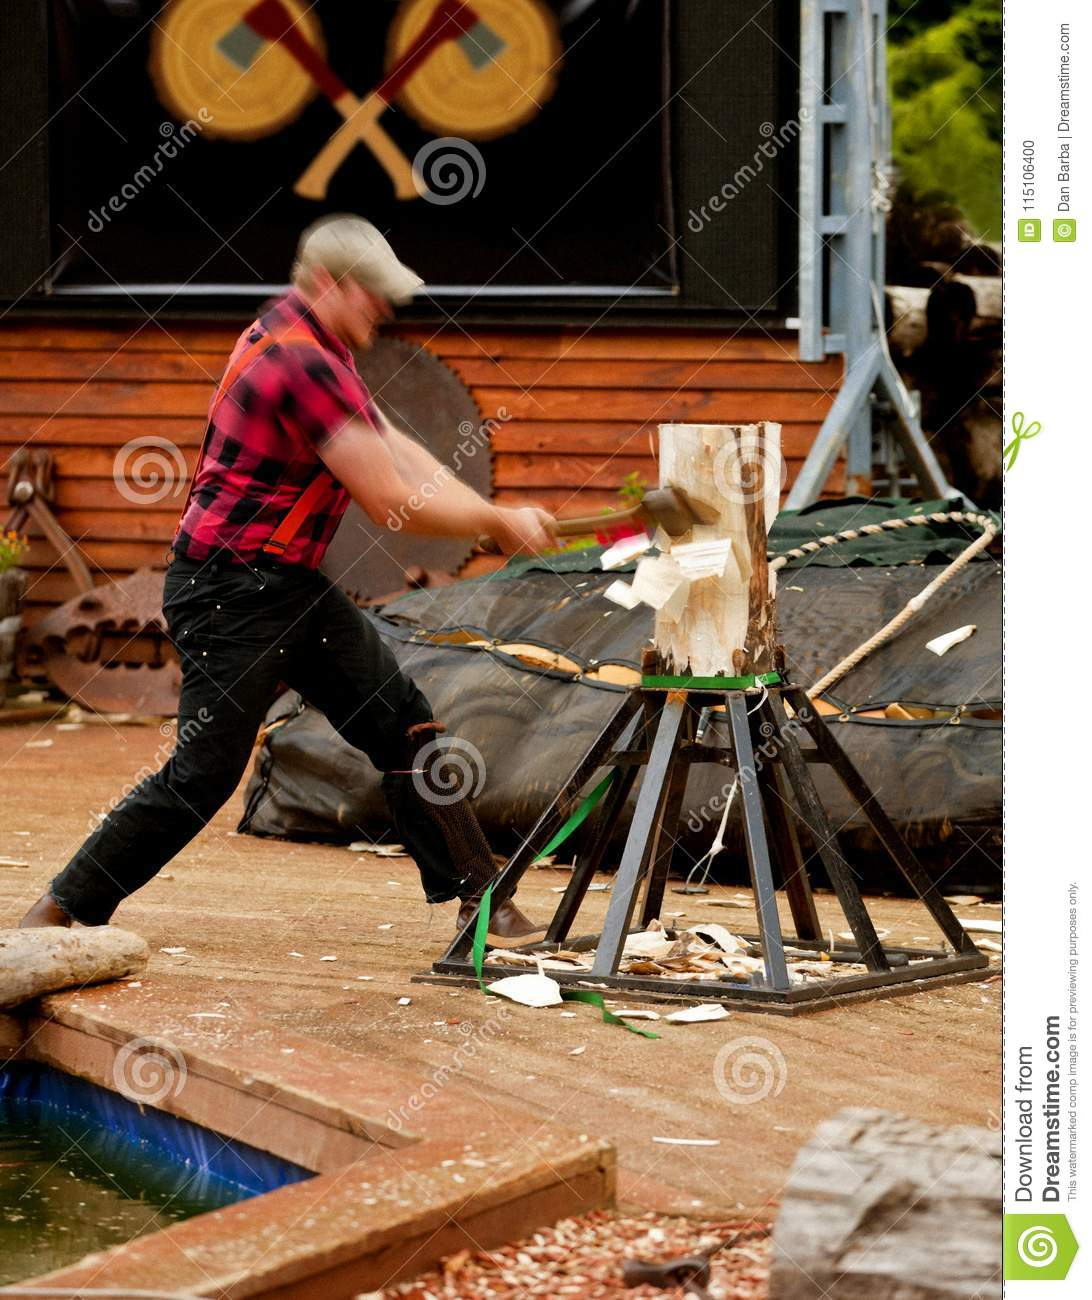 LUMBERJACK HACKING INTO LOG WITH AX AND CHIPS FLYING ALL OVER